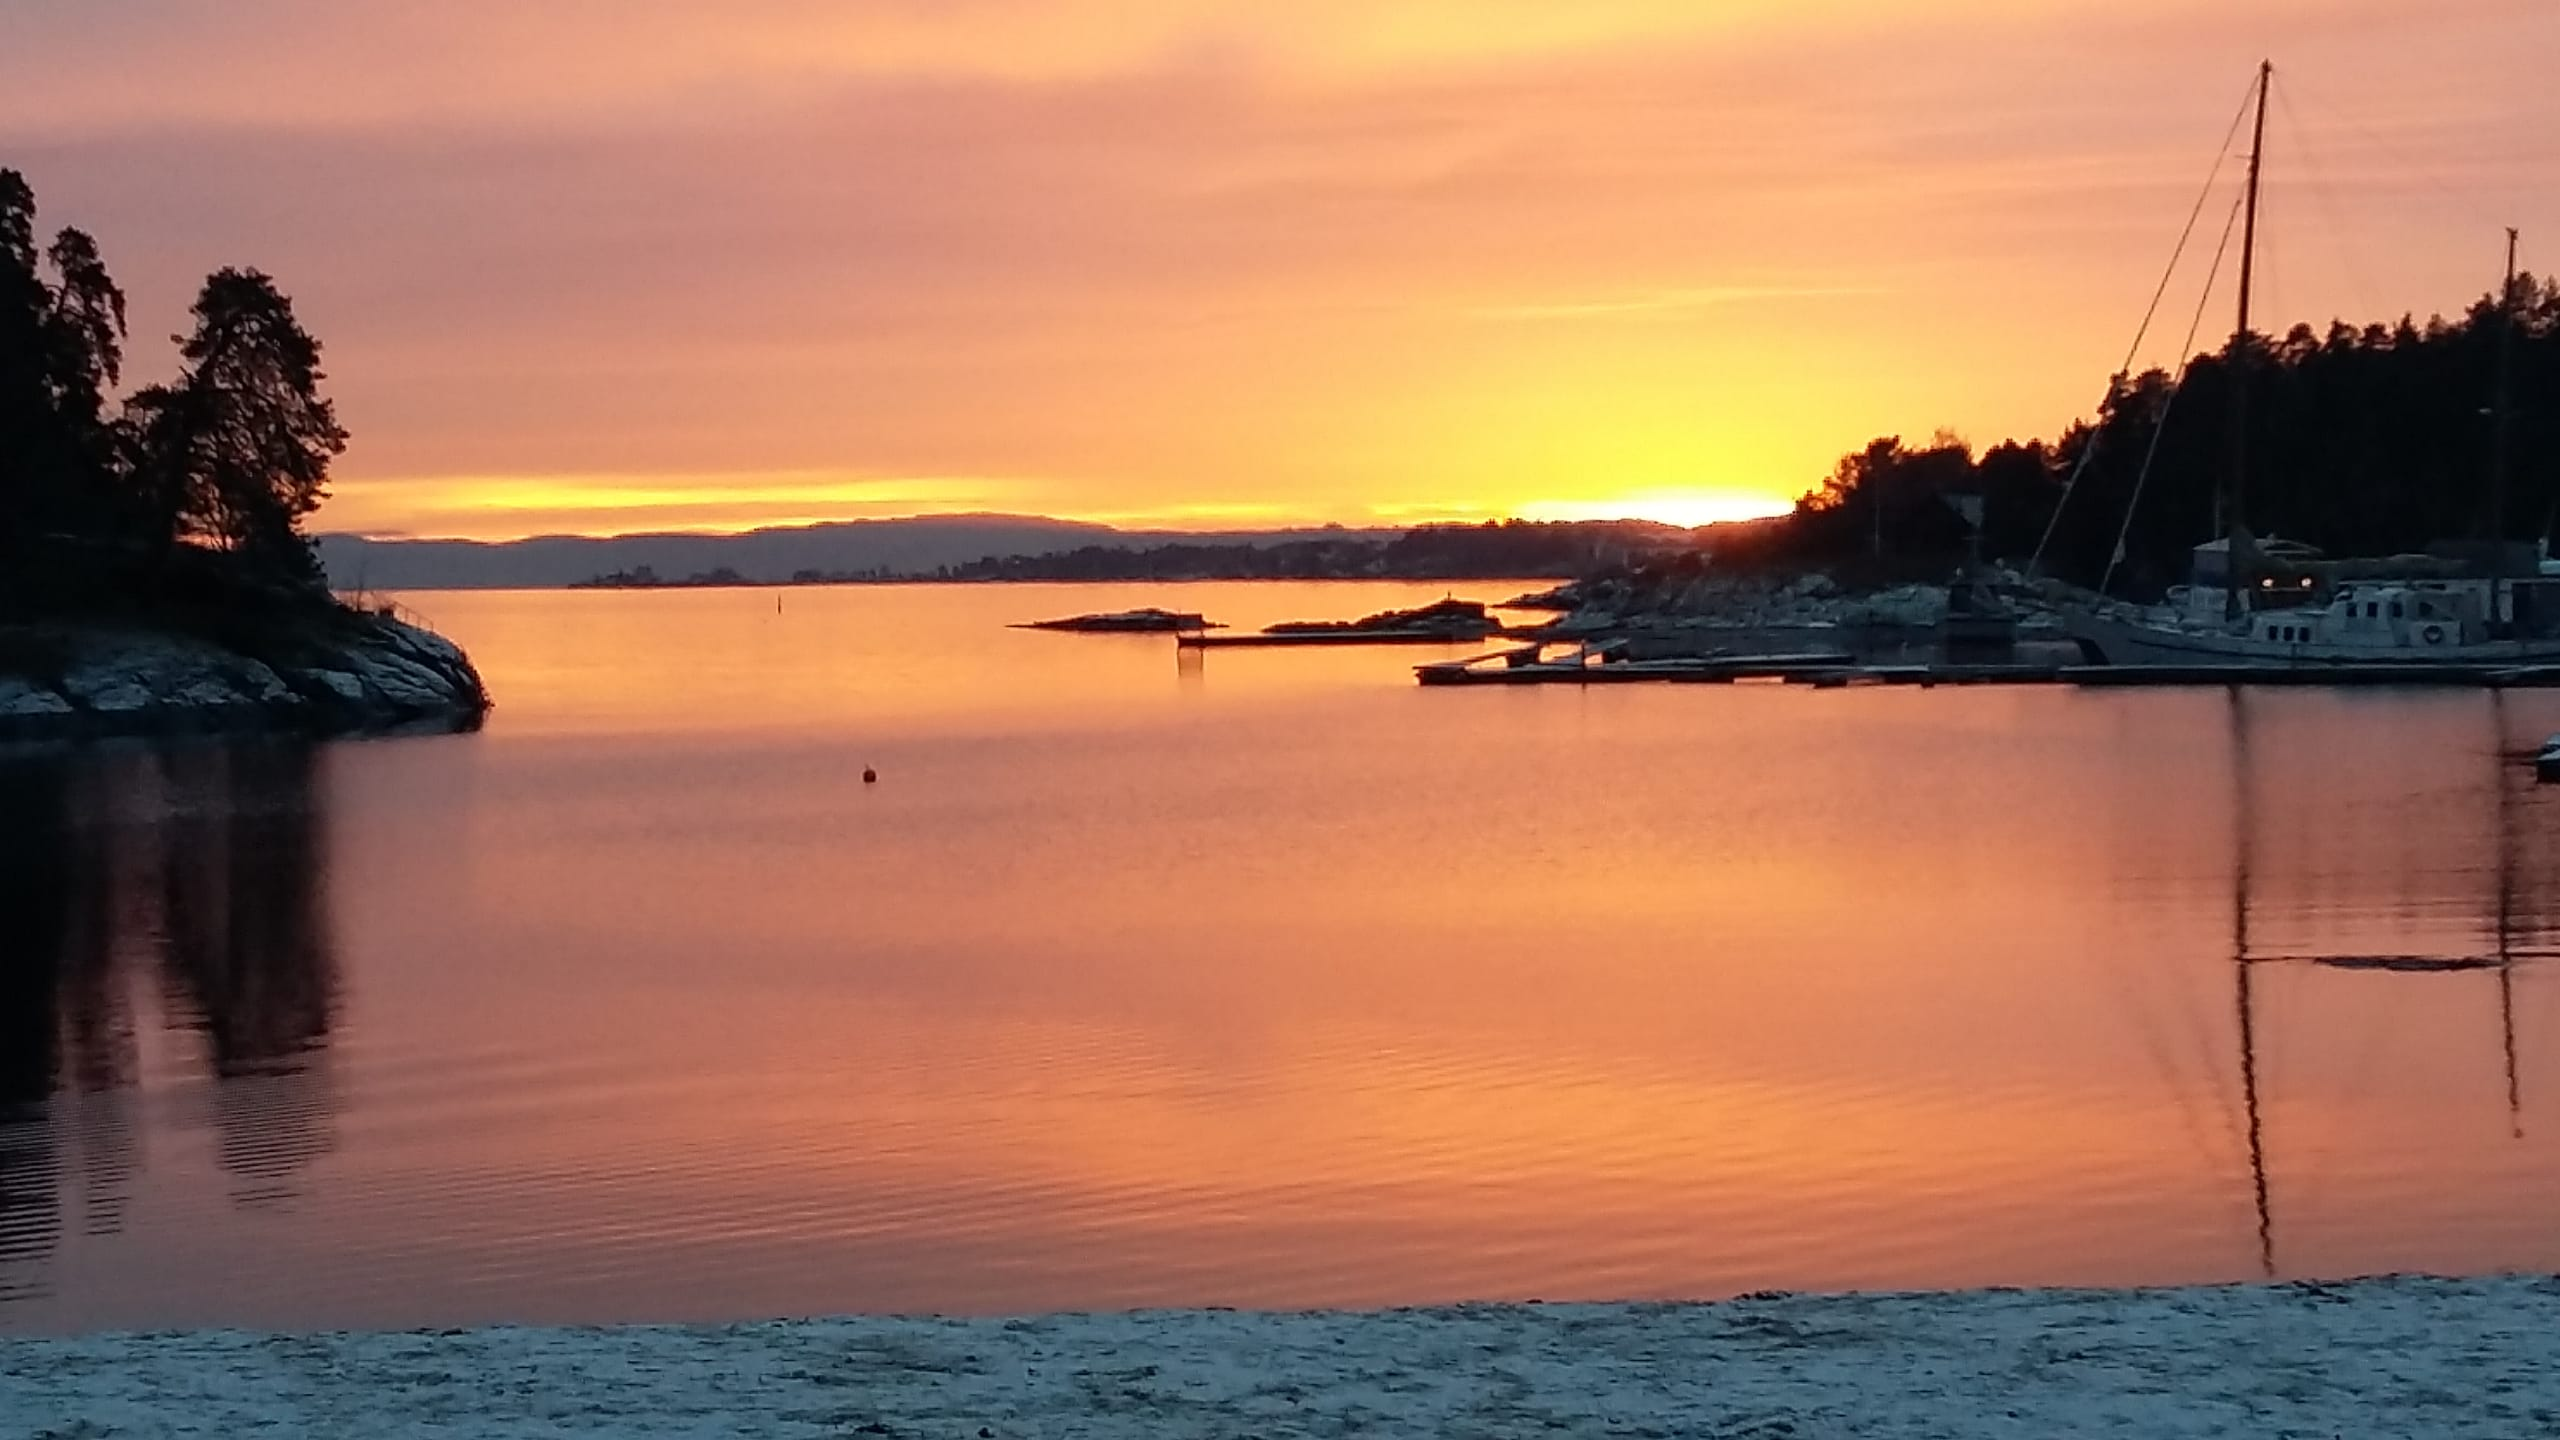 A coastal view featuring a bright red sunset in Oslo.